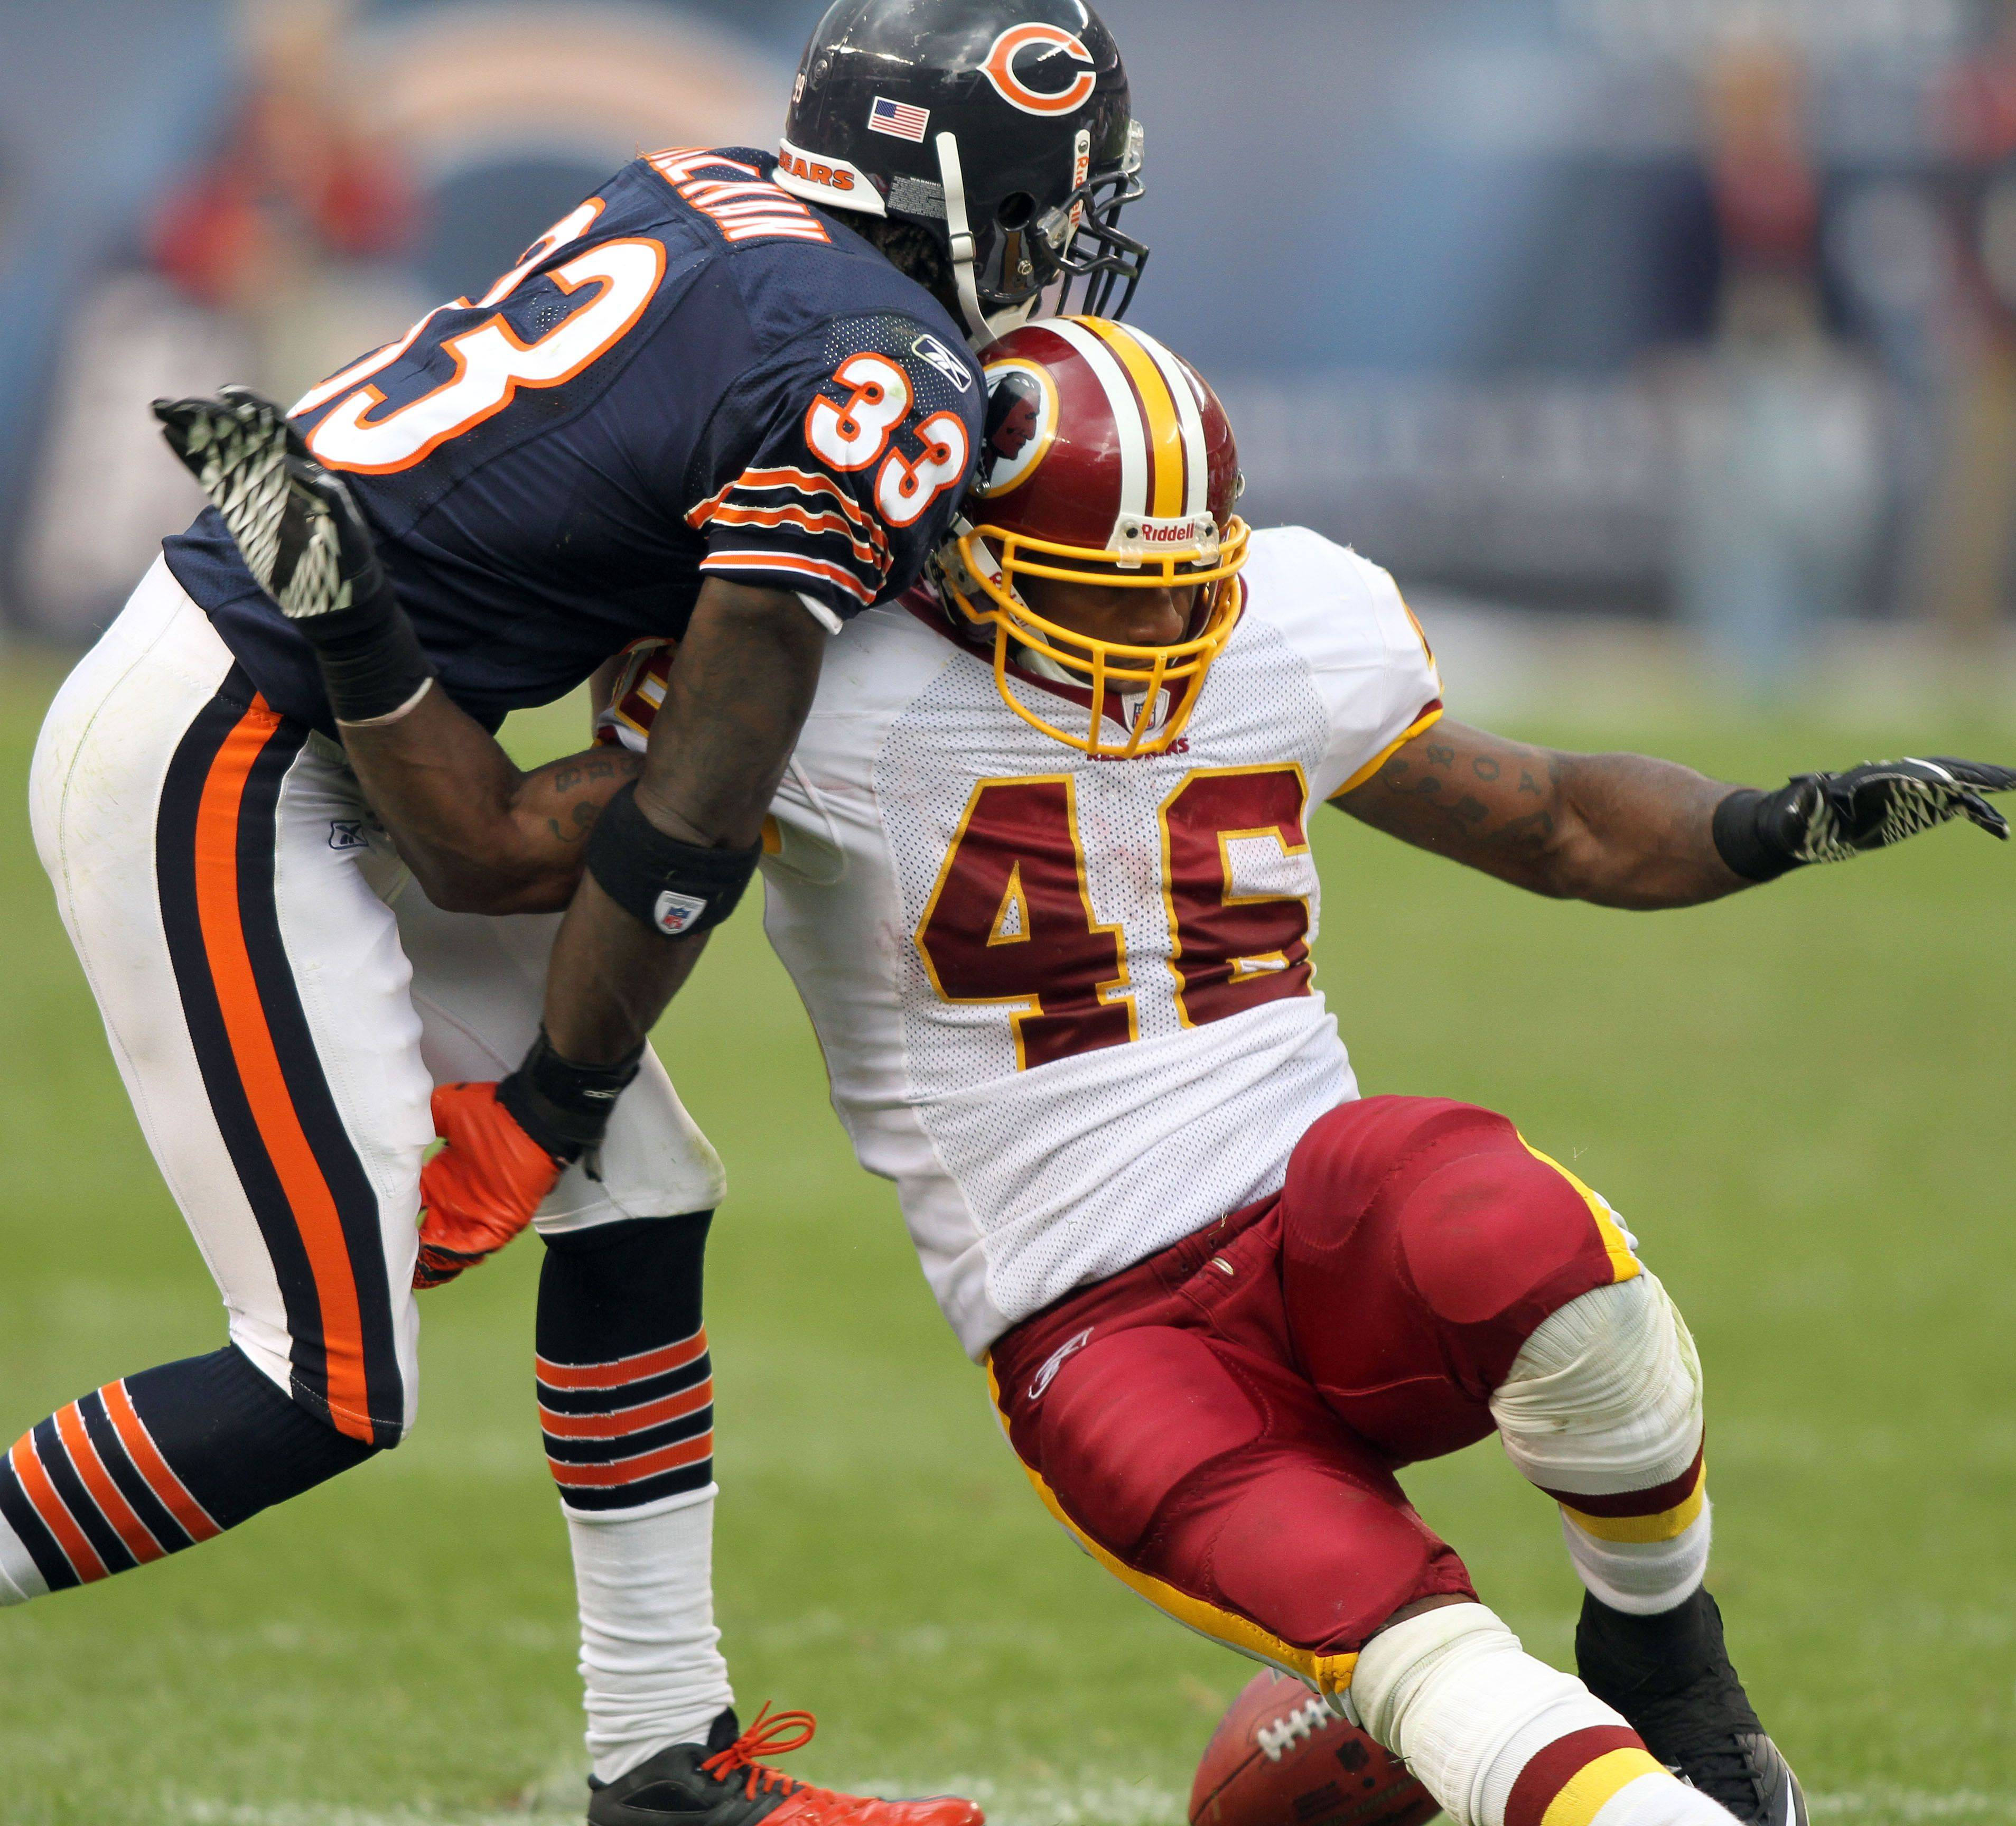 Chicago Bears cornerback Charles Tillman strips the ball from Washington Redskins running back Ryan Torain during the Bears' 14-17 loss to the Redskins.